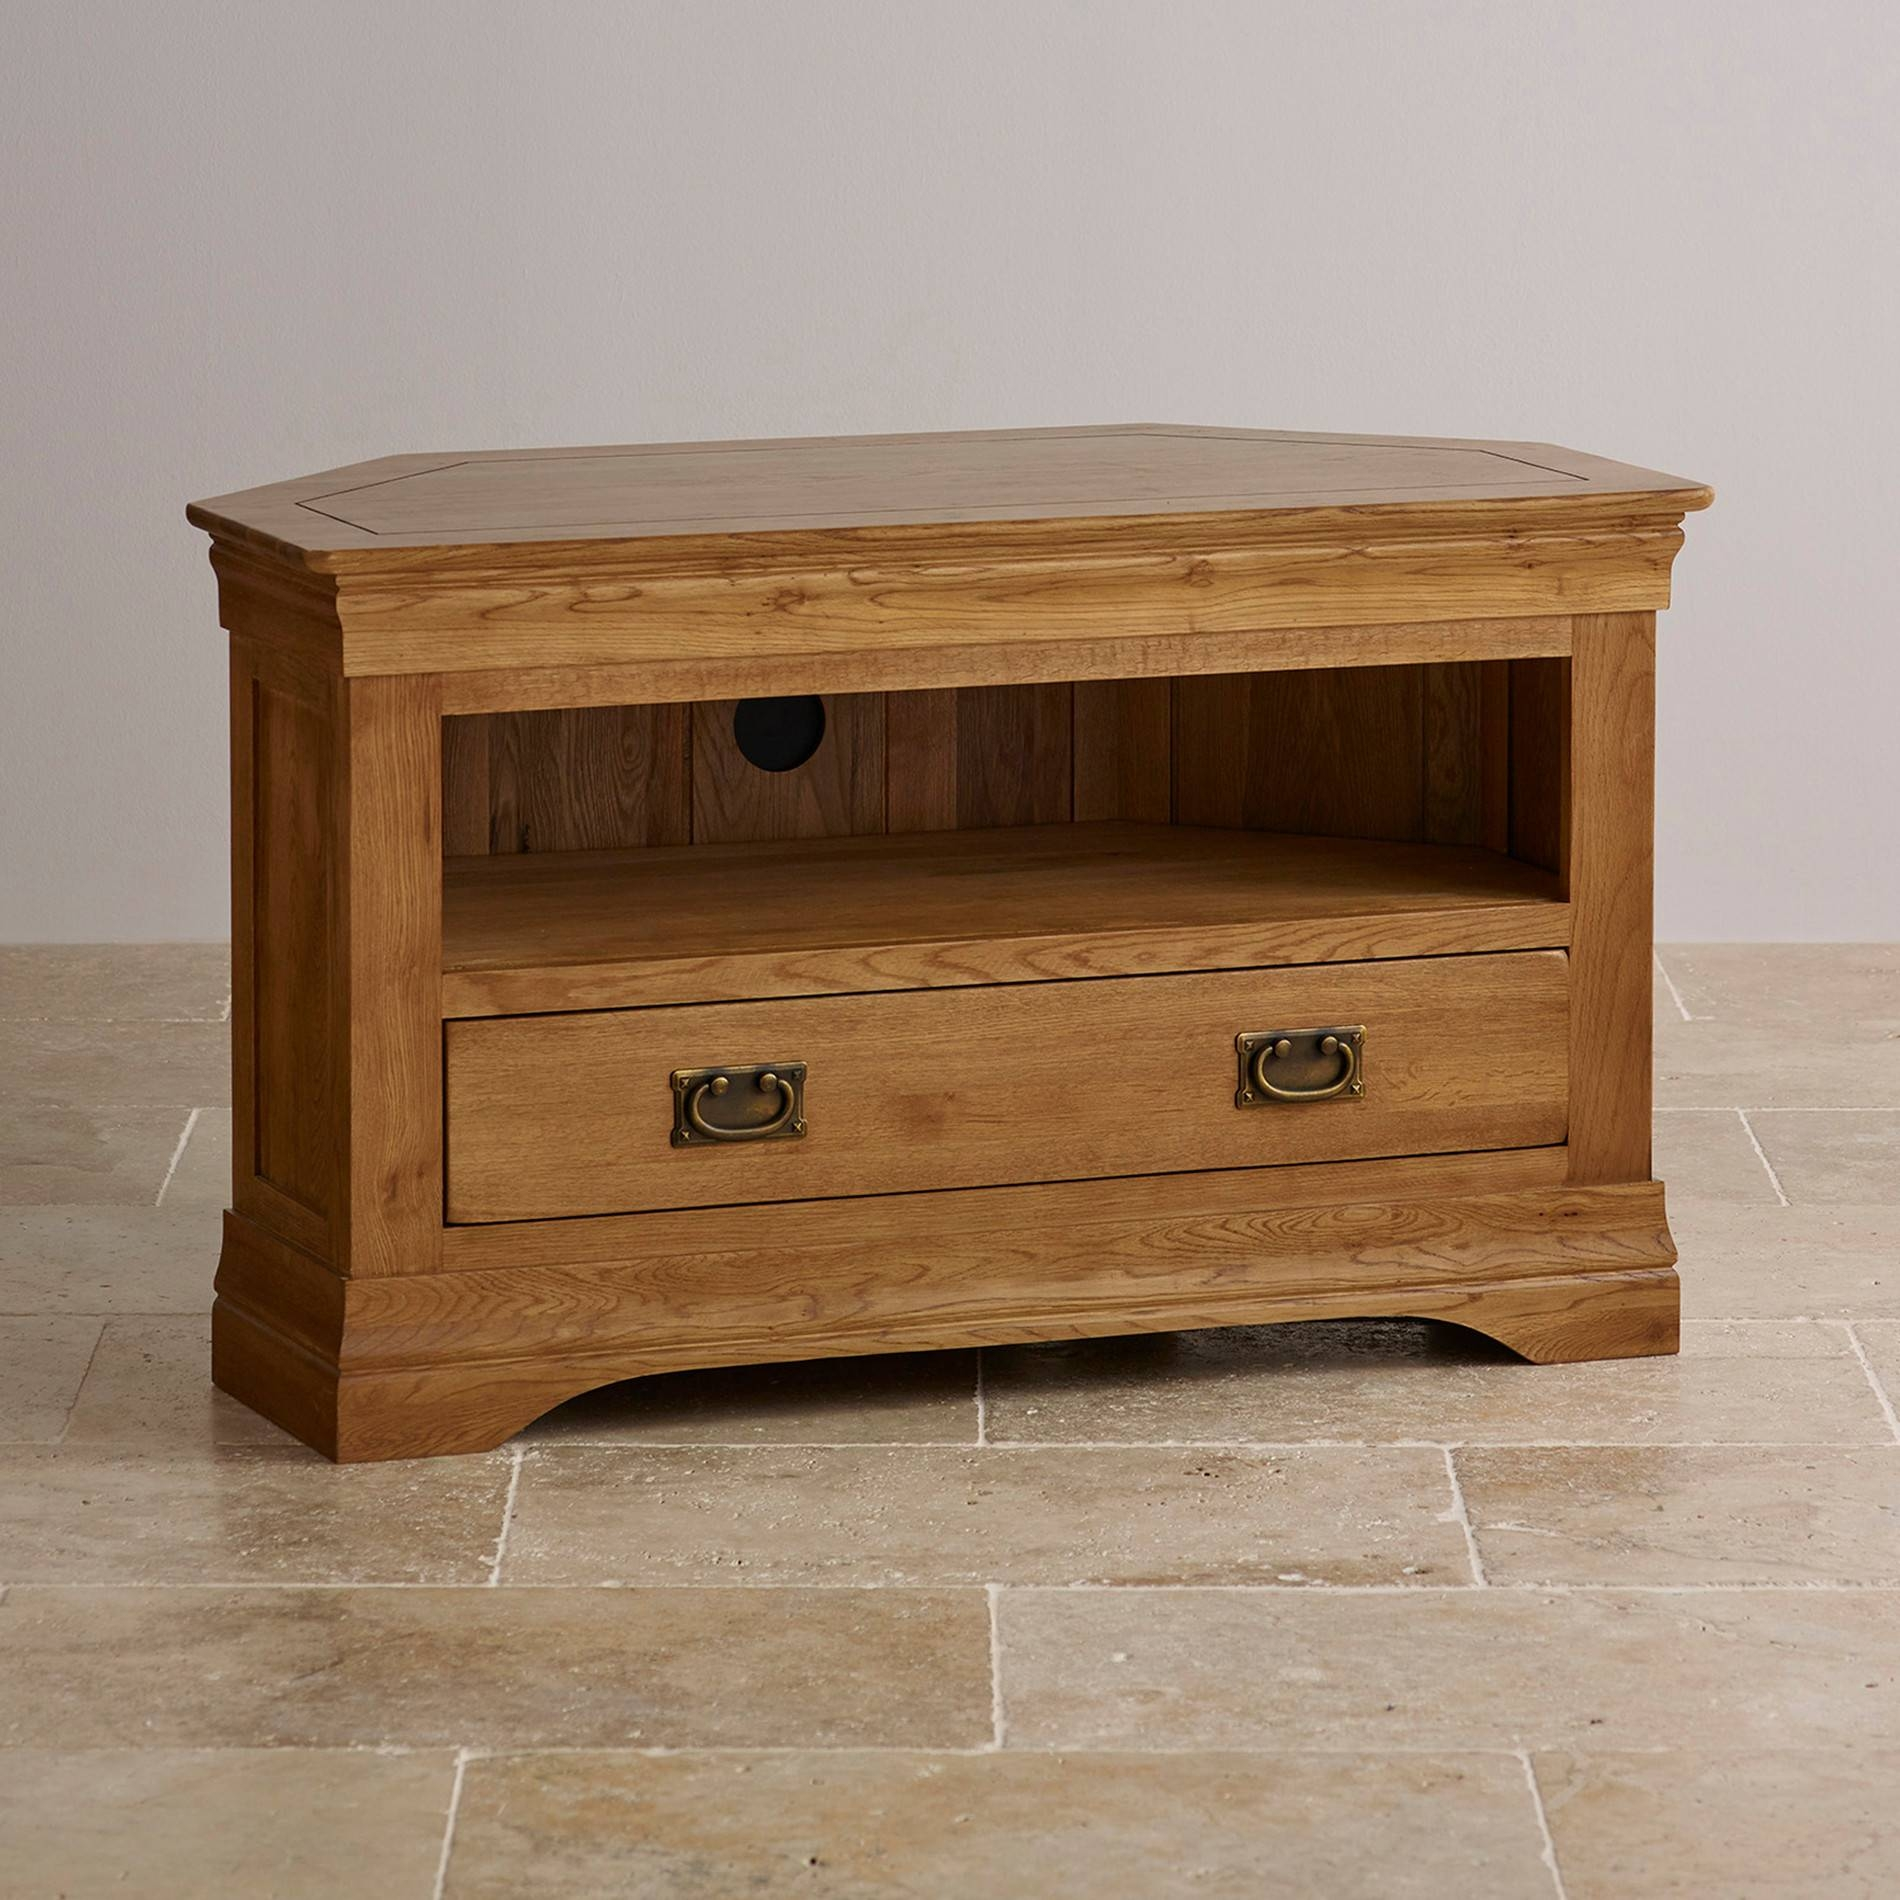 French Farmhouse Corner Tv Unit | Solid Oak | Oak Furniture Land for Corner Wooden Tv Cabinets (Image 7 of 15)